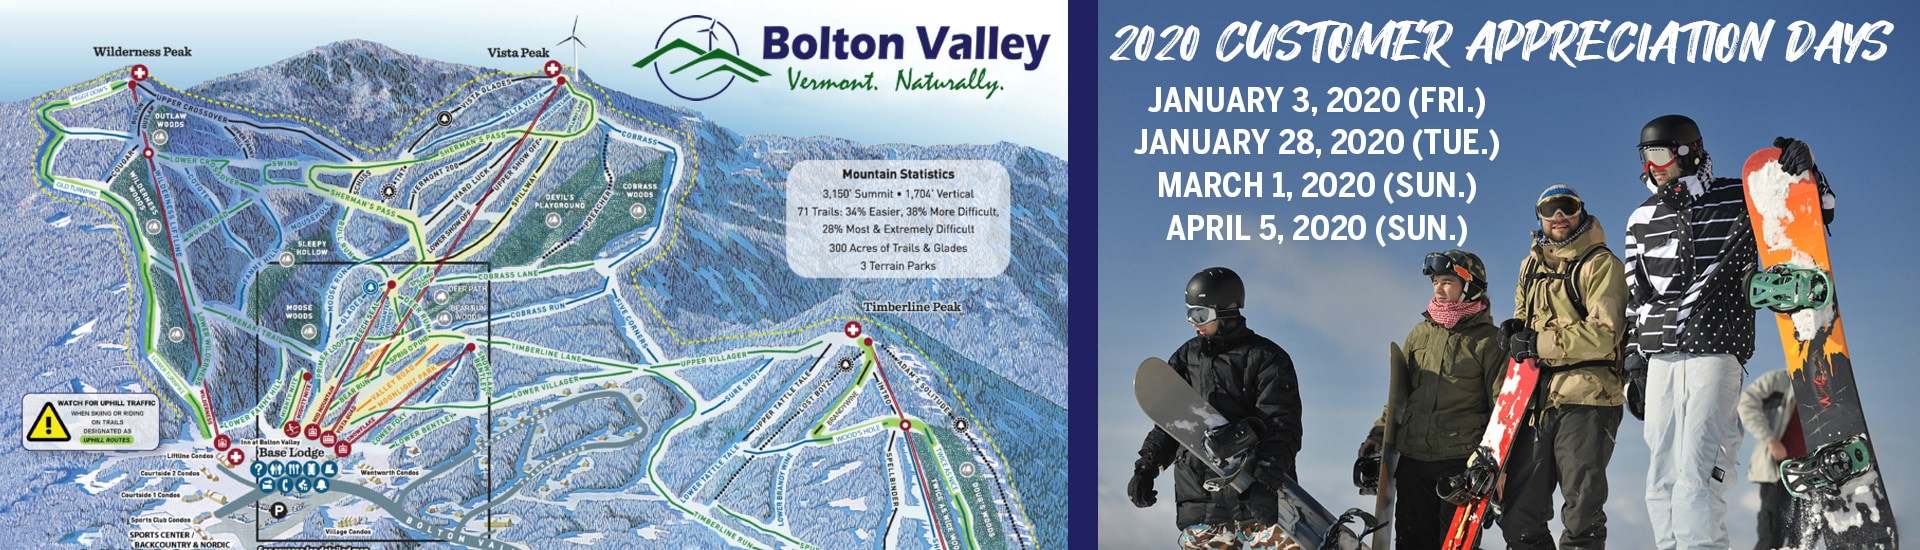 Bolton Valley Customer Appreciation Days